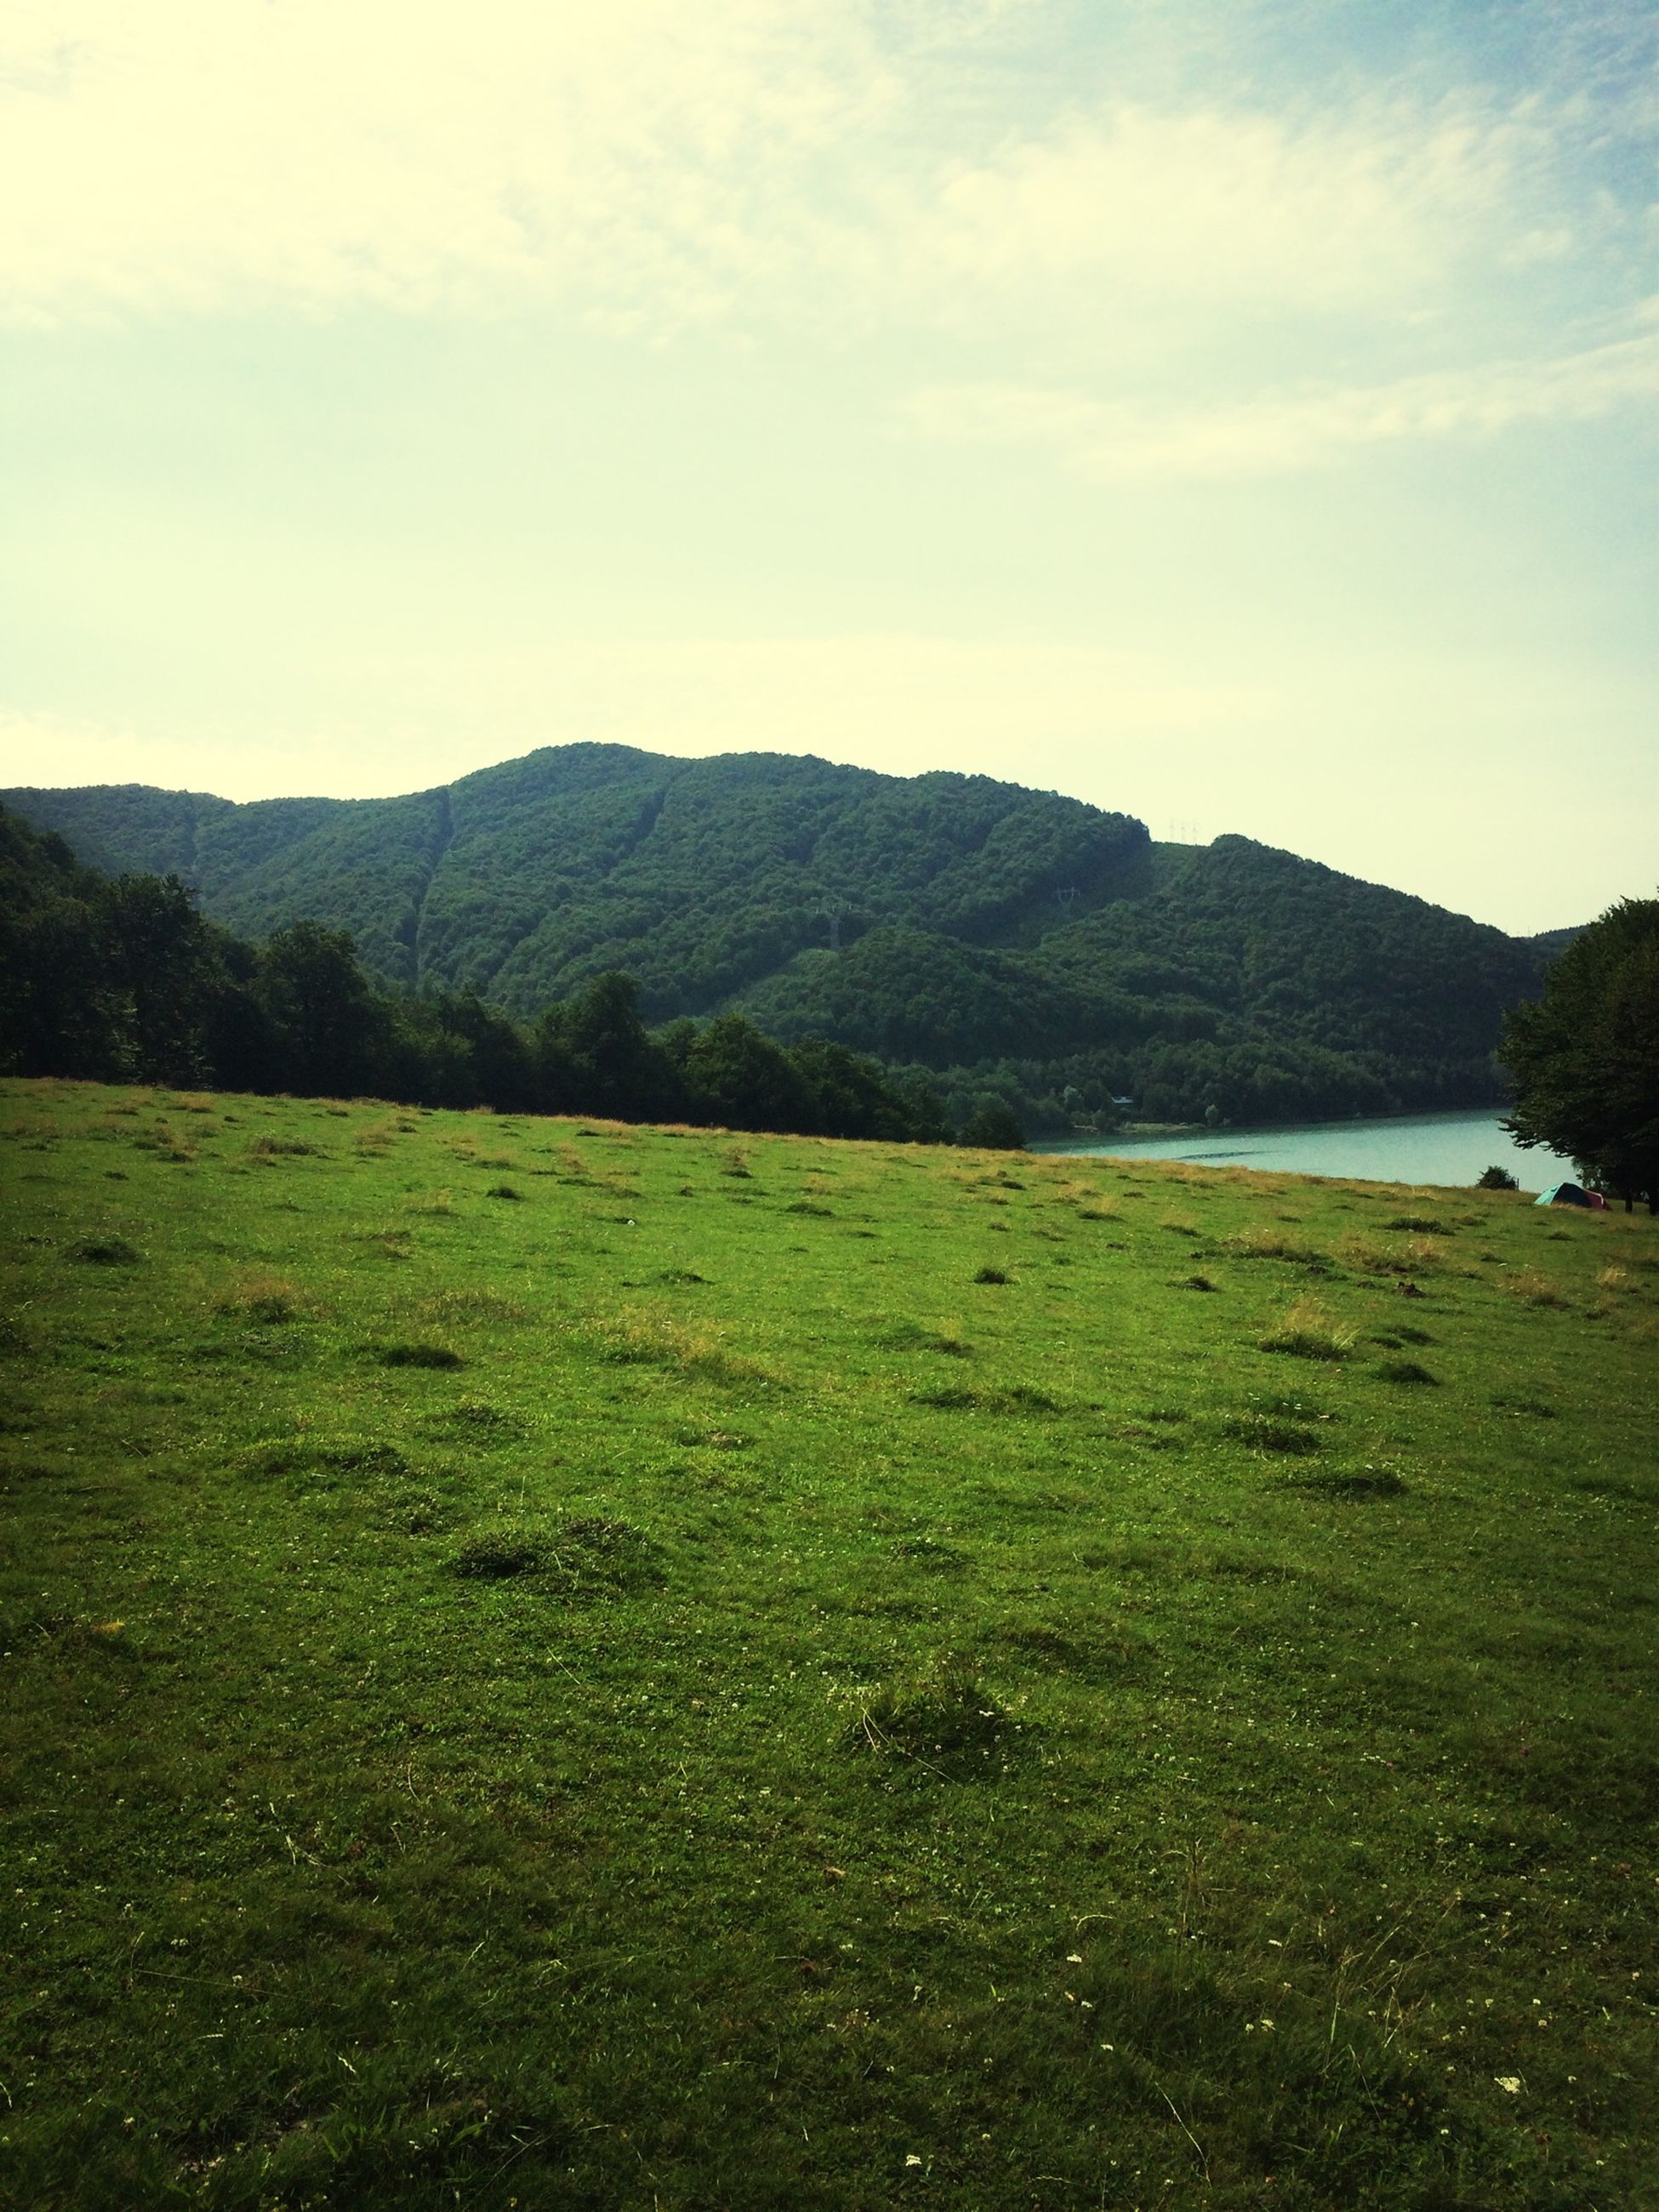 grass, mountain, tranquil scene, sky, tranquility, scenics, landscape, beauty in nature, water, nature, green color, grassy, mountain range, field, lake, cloud - sky, idyllic, cloud, non-urban scene, outdoors